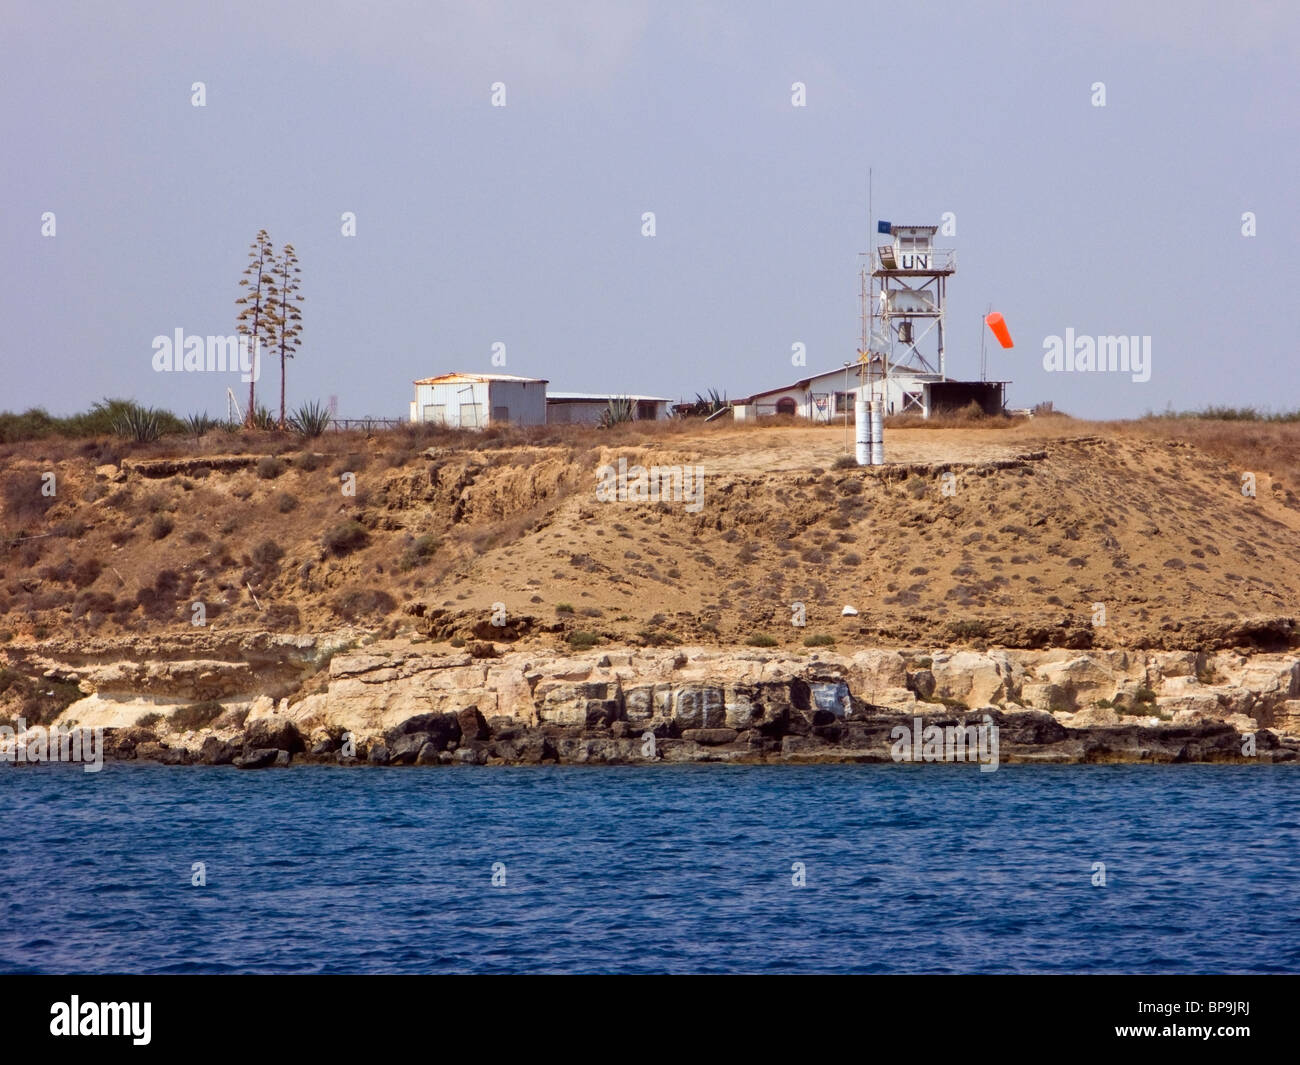 A United Nations watch tower near Famagusta, Cyprus. - Stock Image